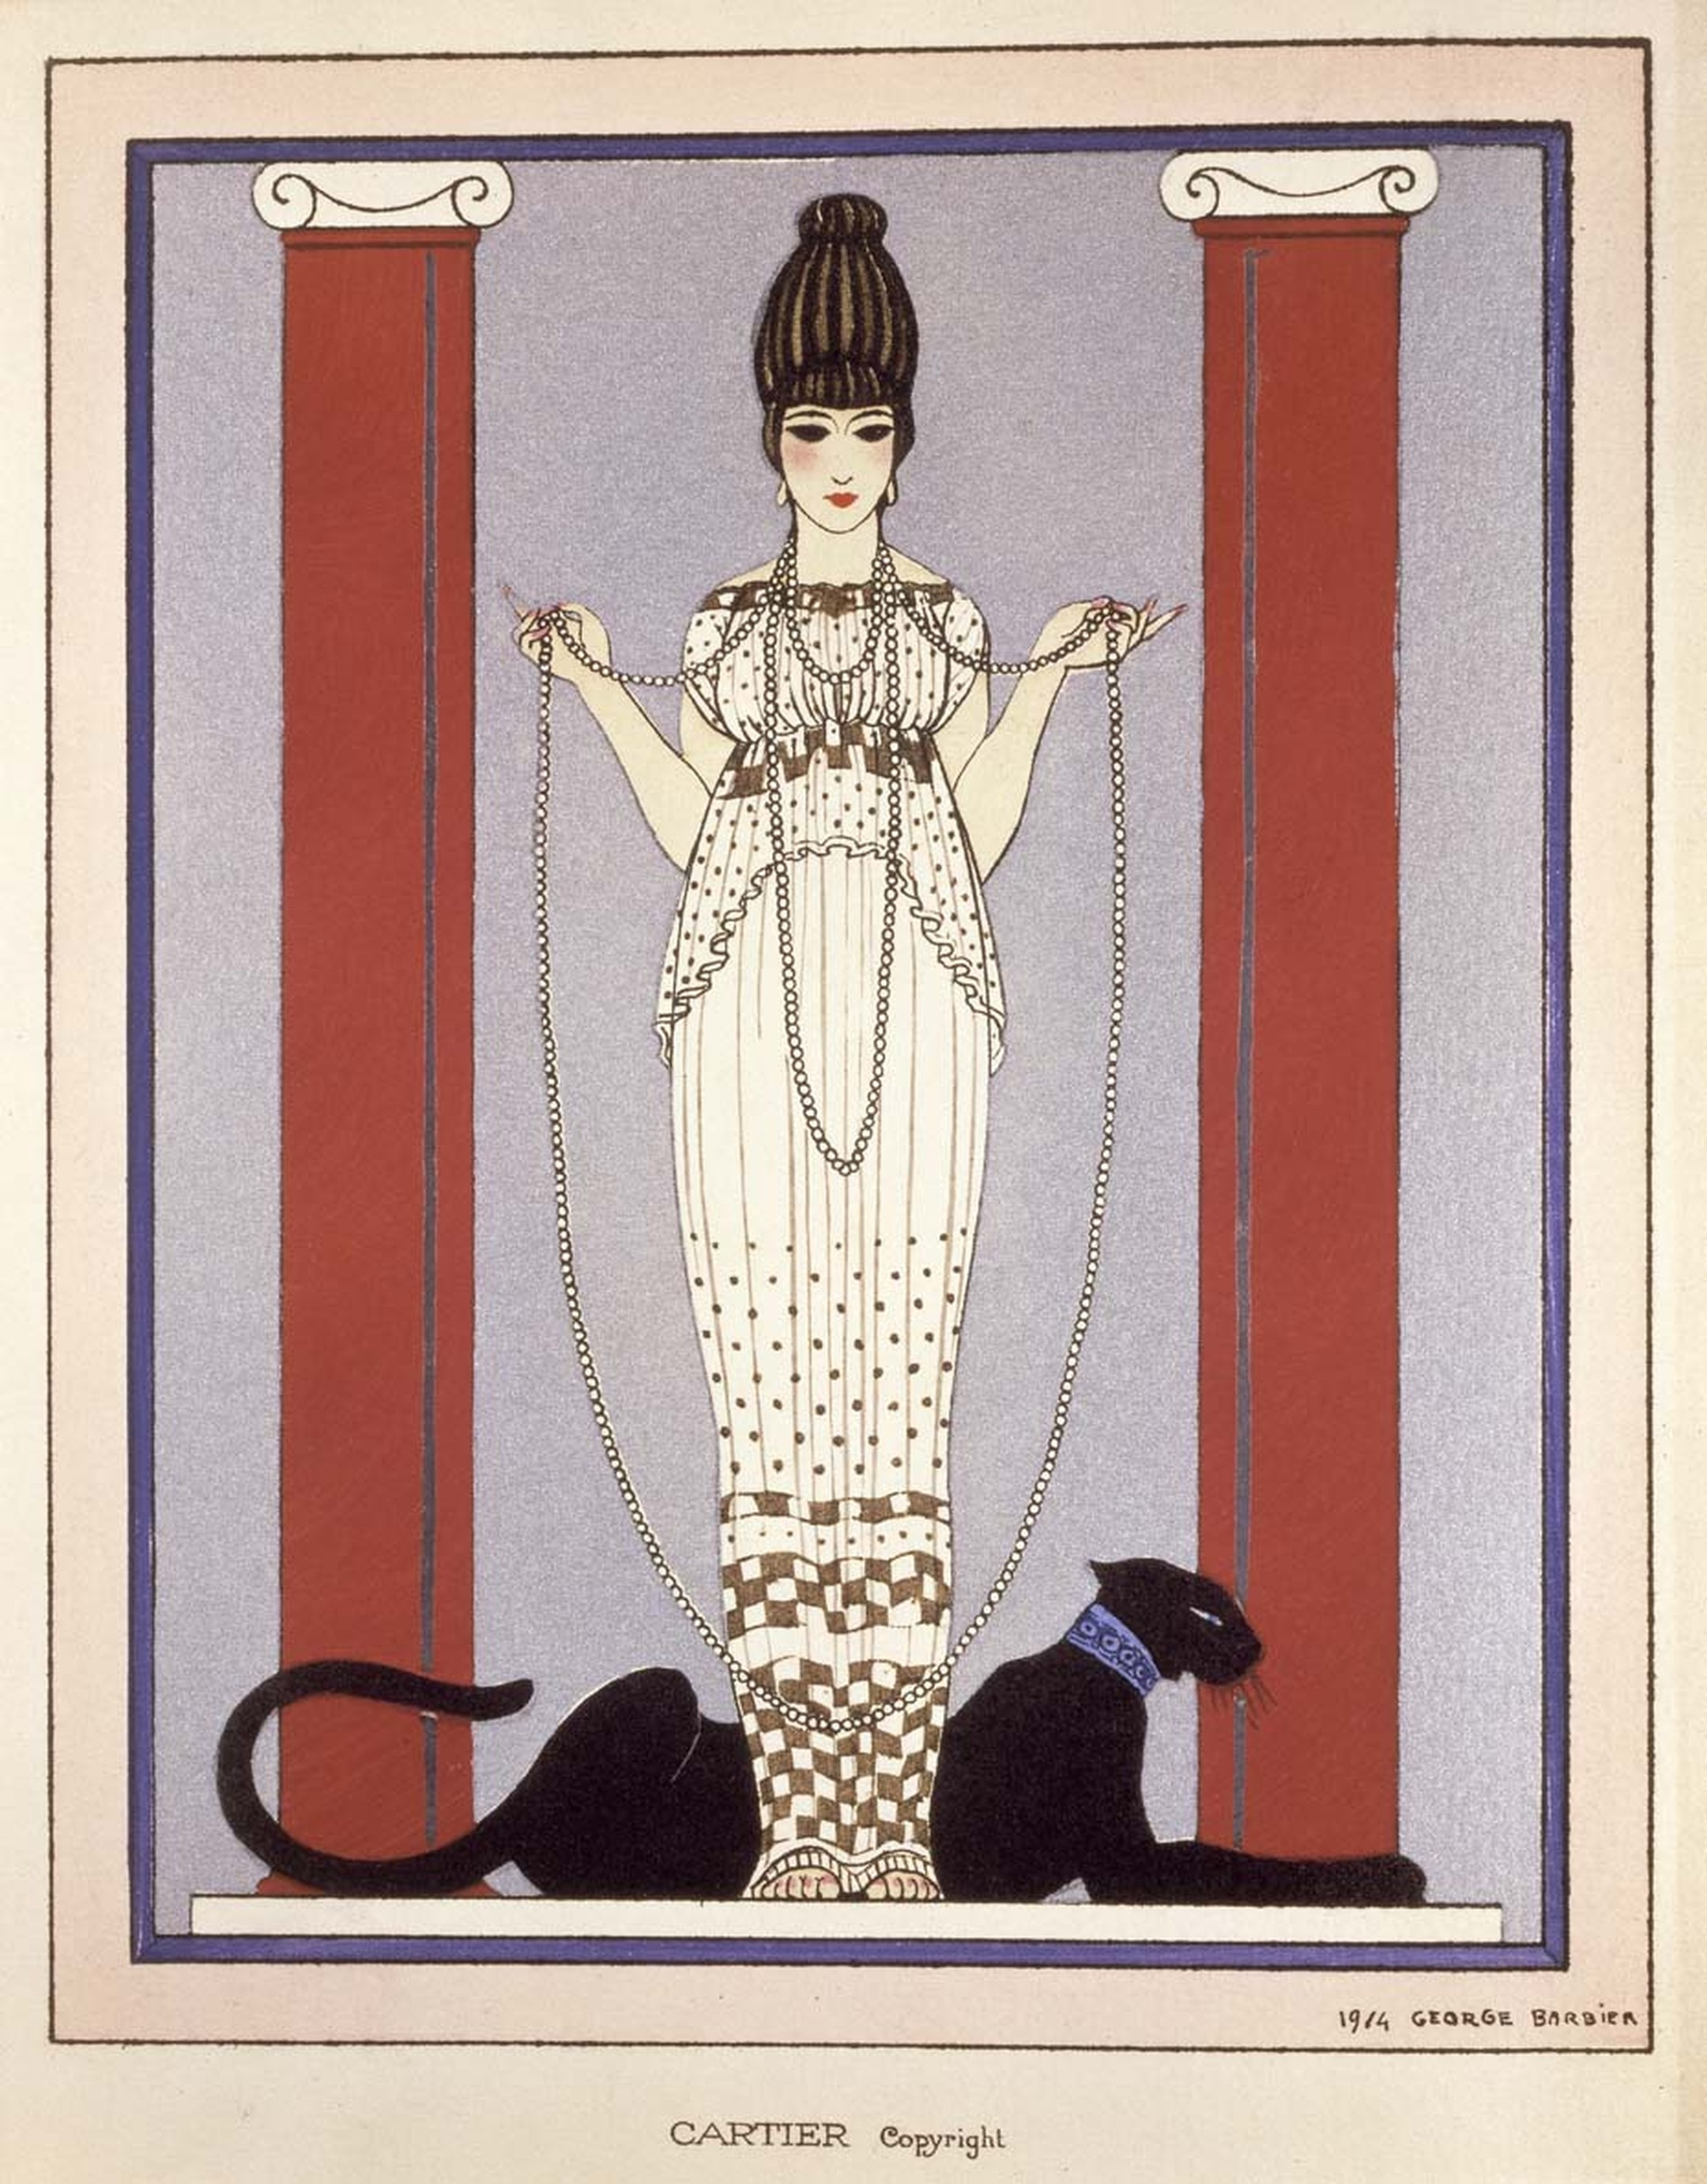 Cartier invitation card by Georges Barbier. The design was later used for advertising in the 1920s and depicts a woman in a Poiret gown with a black panther at her feet.